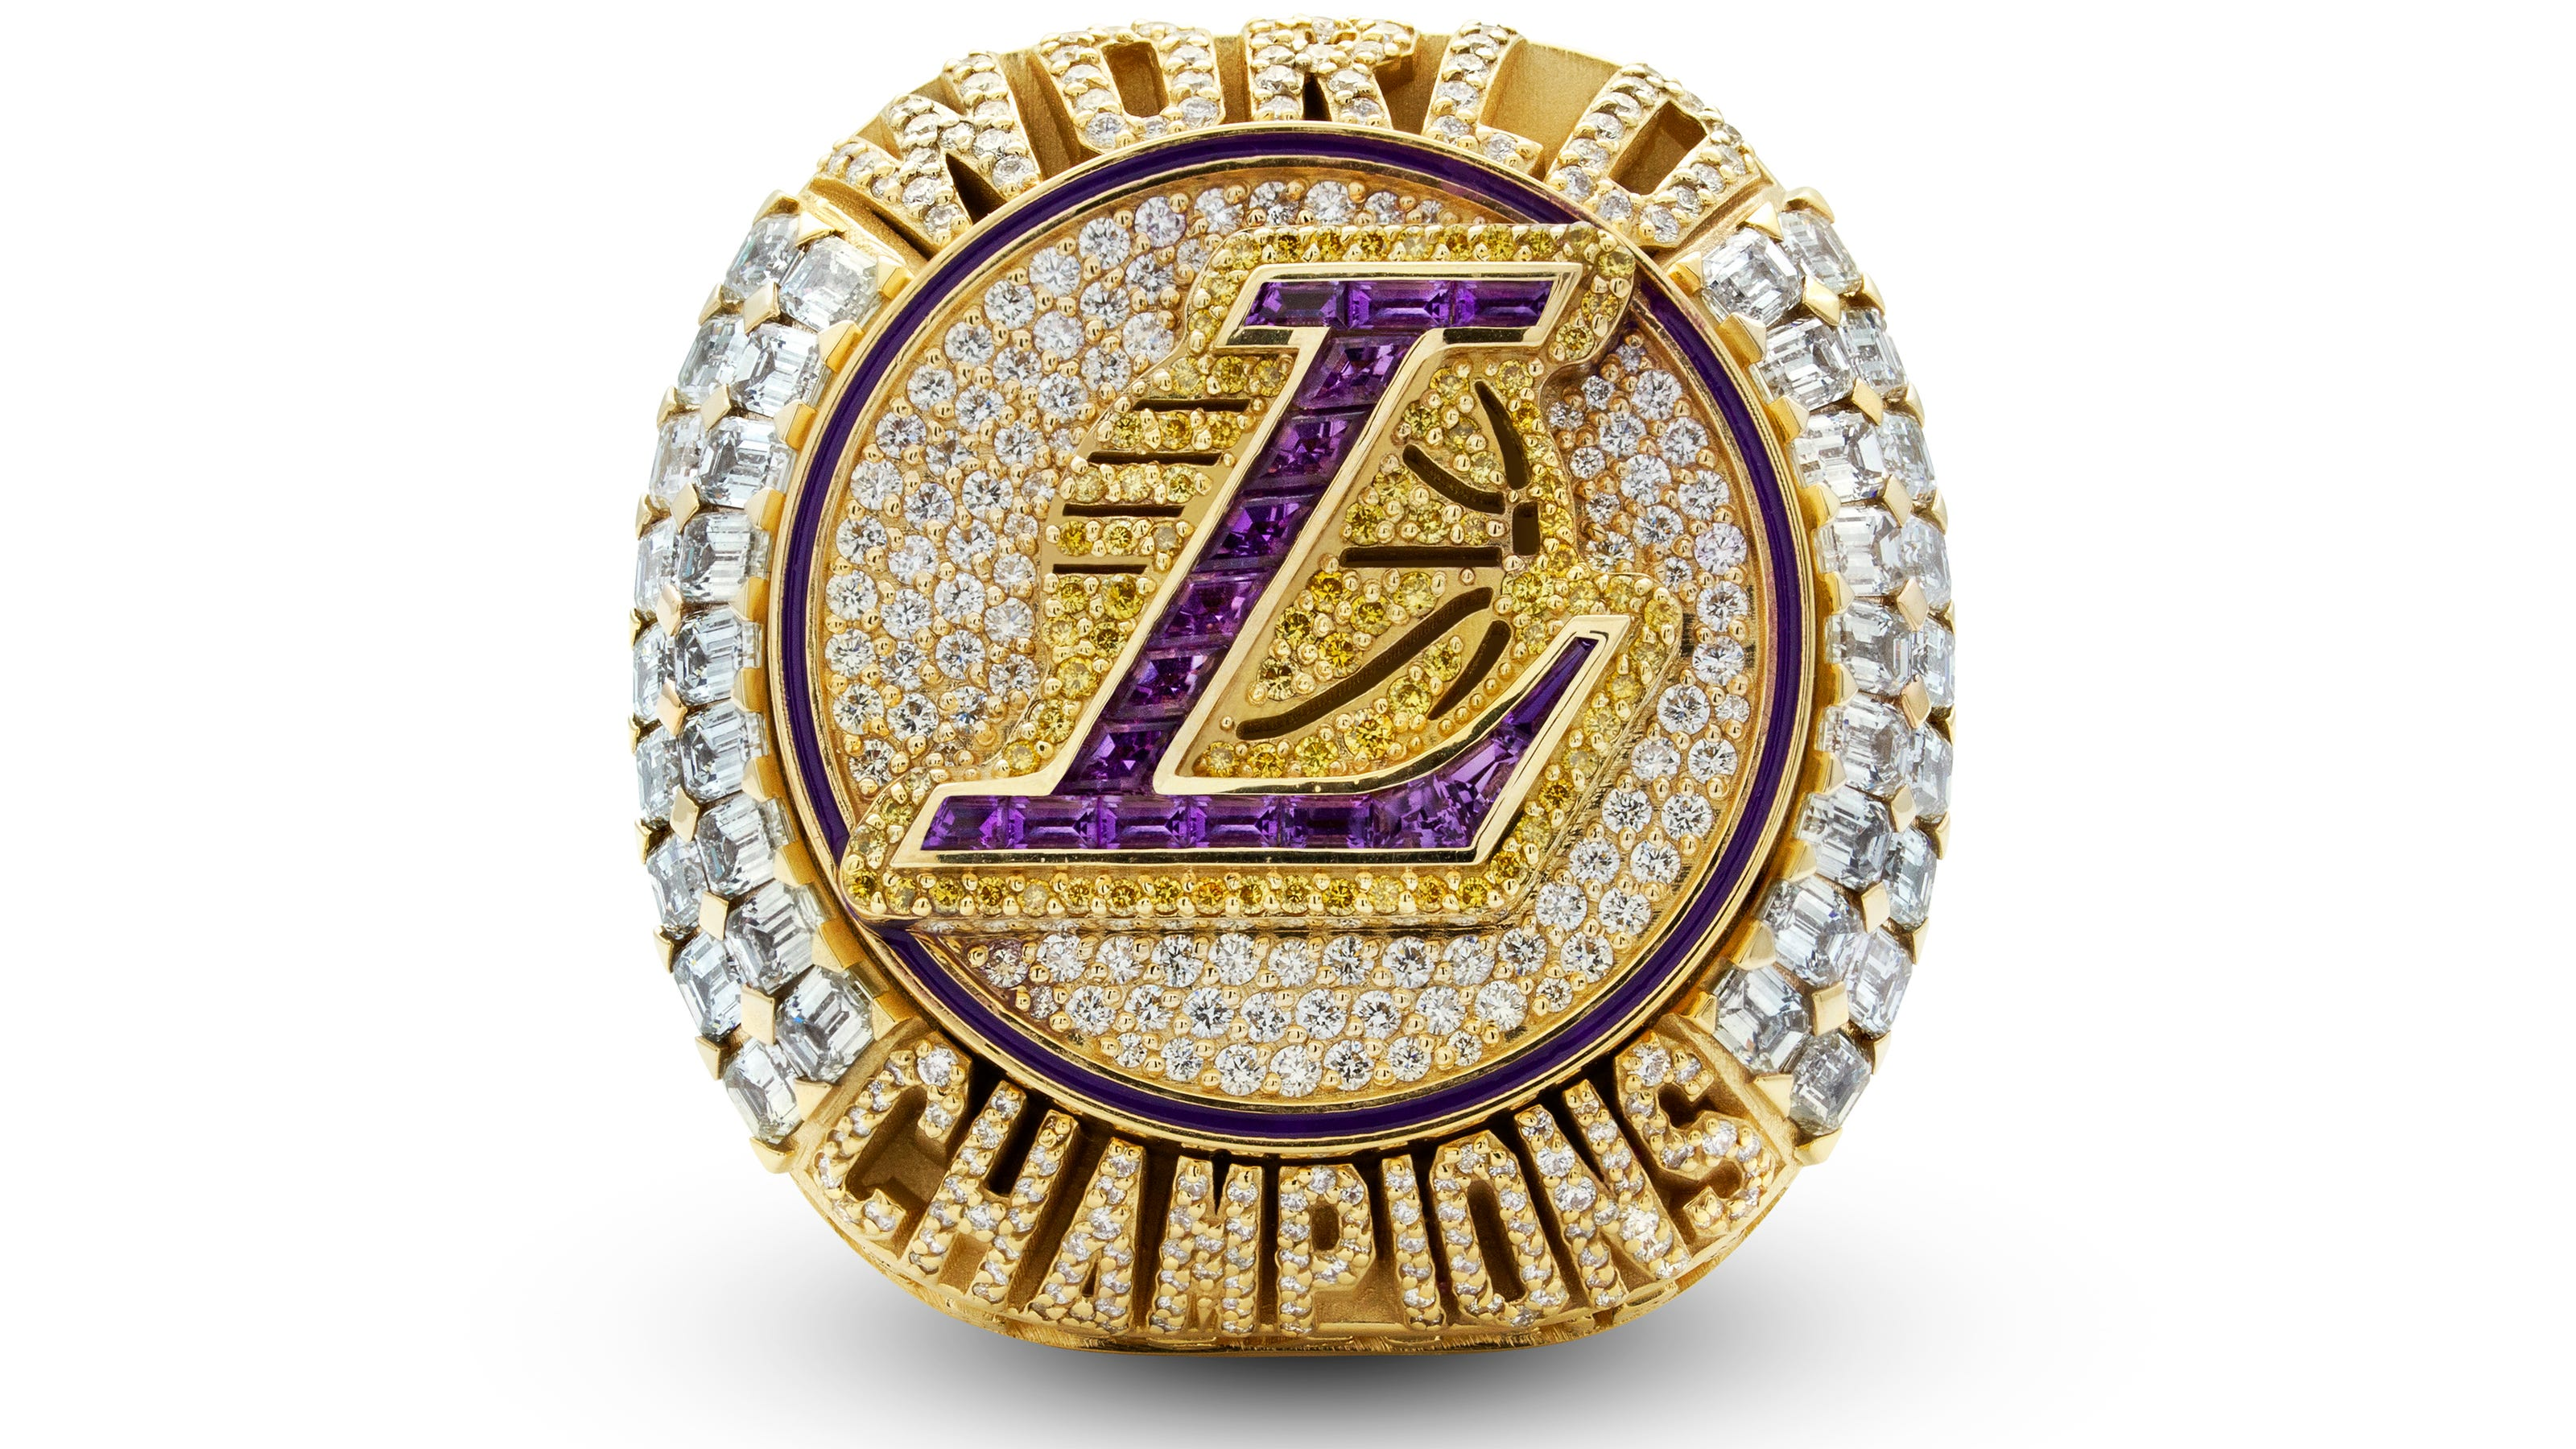 Los Angeles Lakers Rings For 2019 20 Championship Unveiled At Ceremony